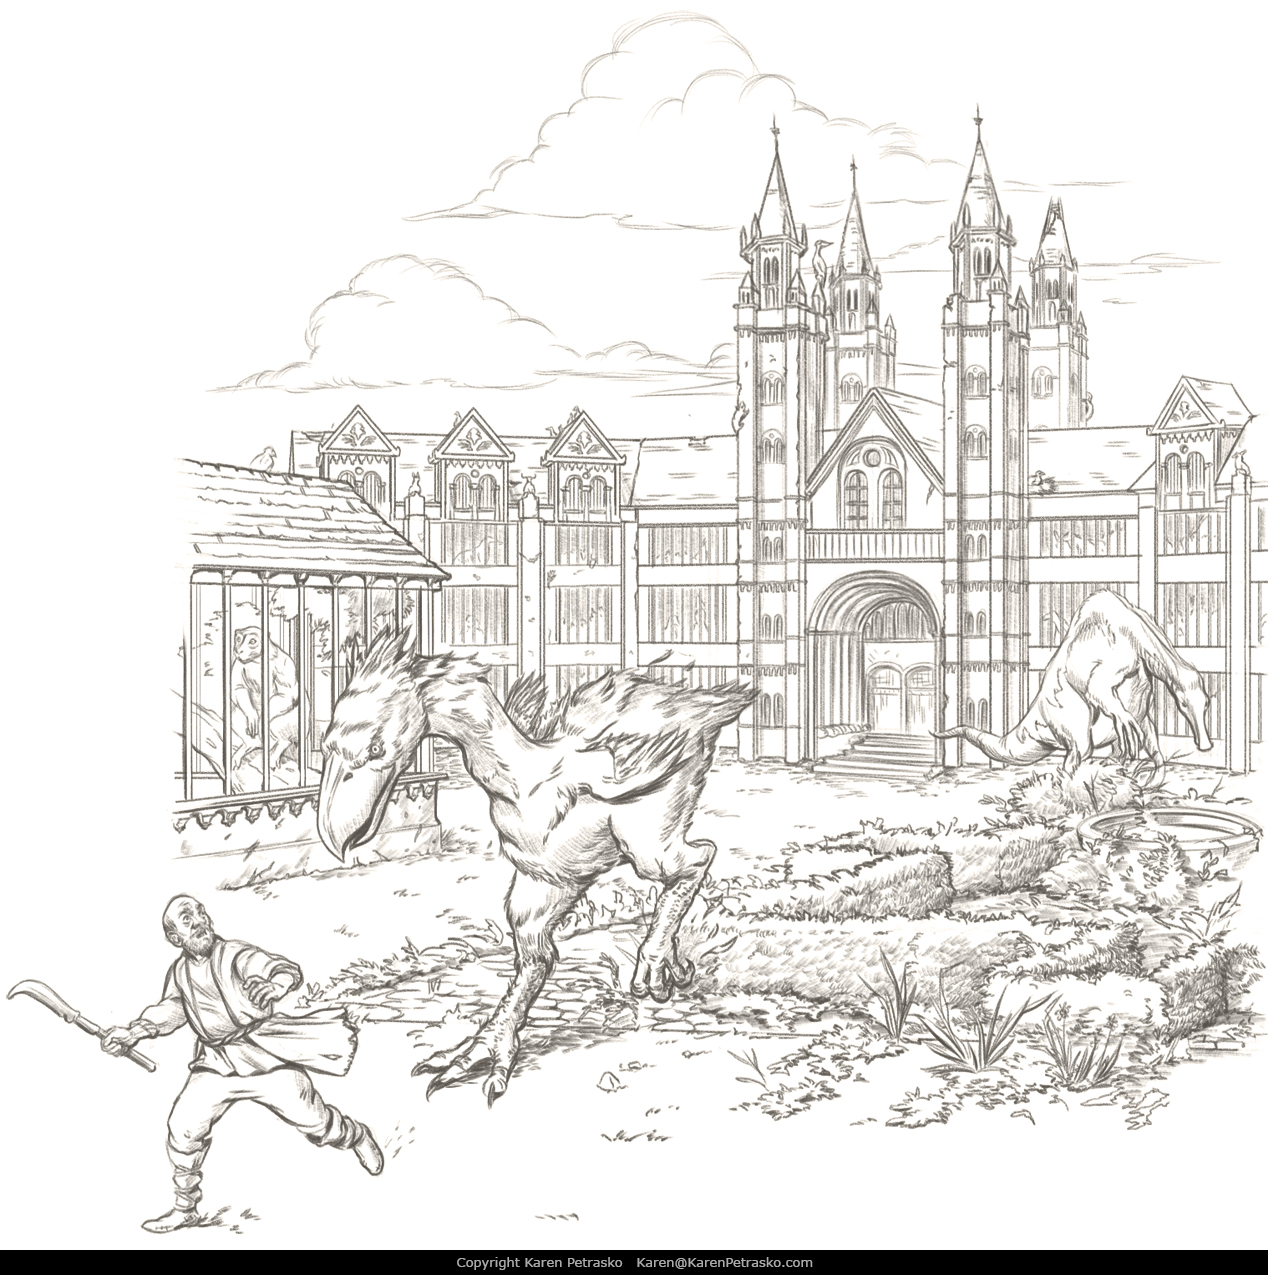 Dinosaur zoo menageries D&D interior art for Spectacular Settlements by Nord Games